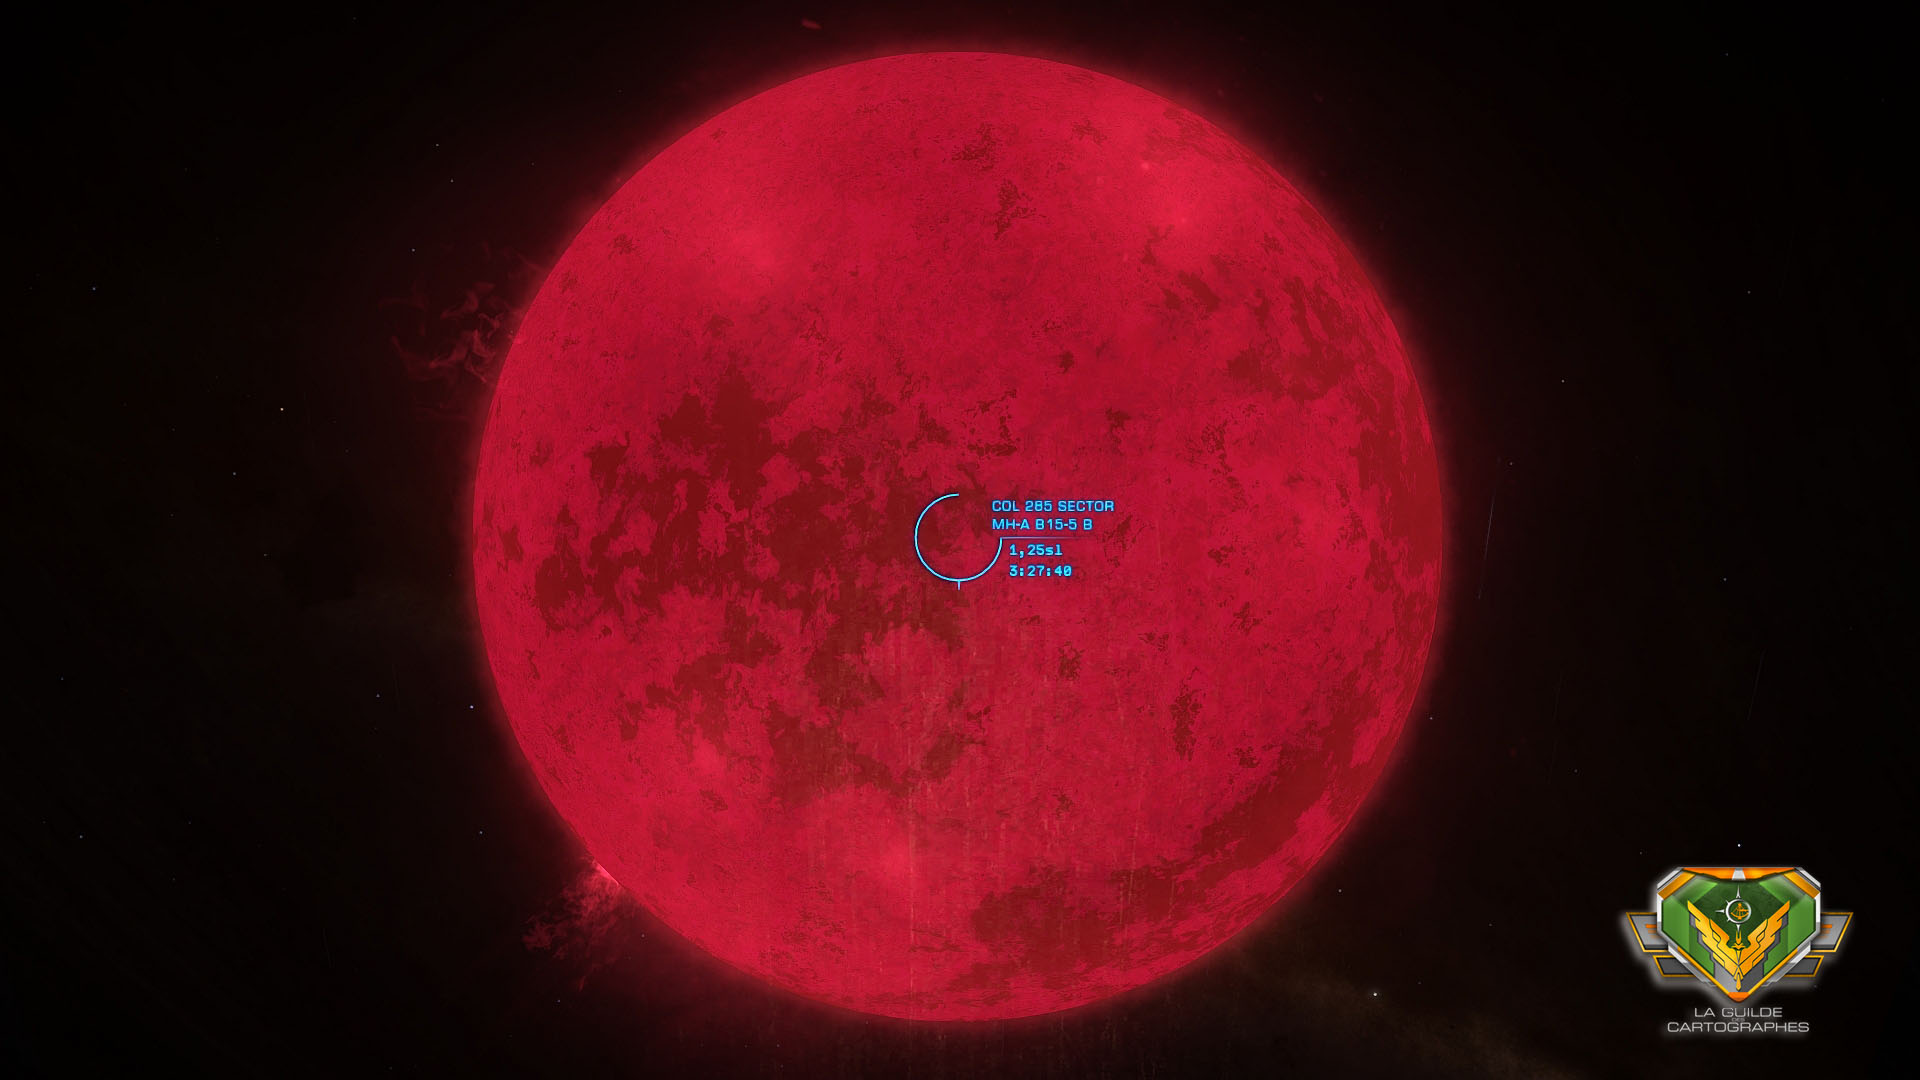 COL 285 SECTOR MH-A B15-5